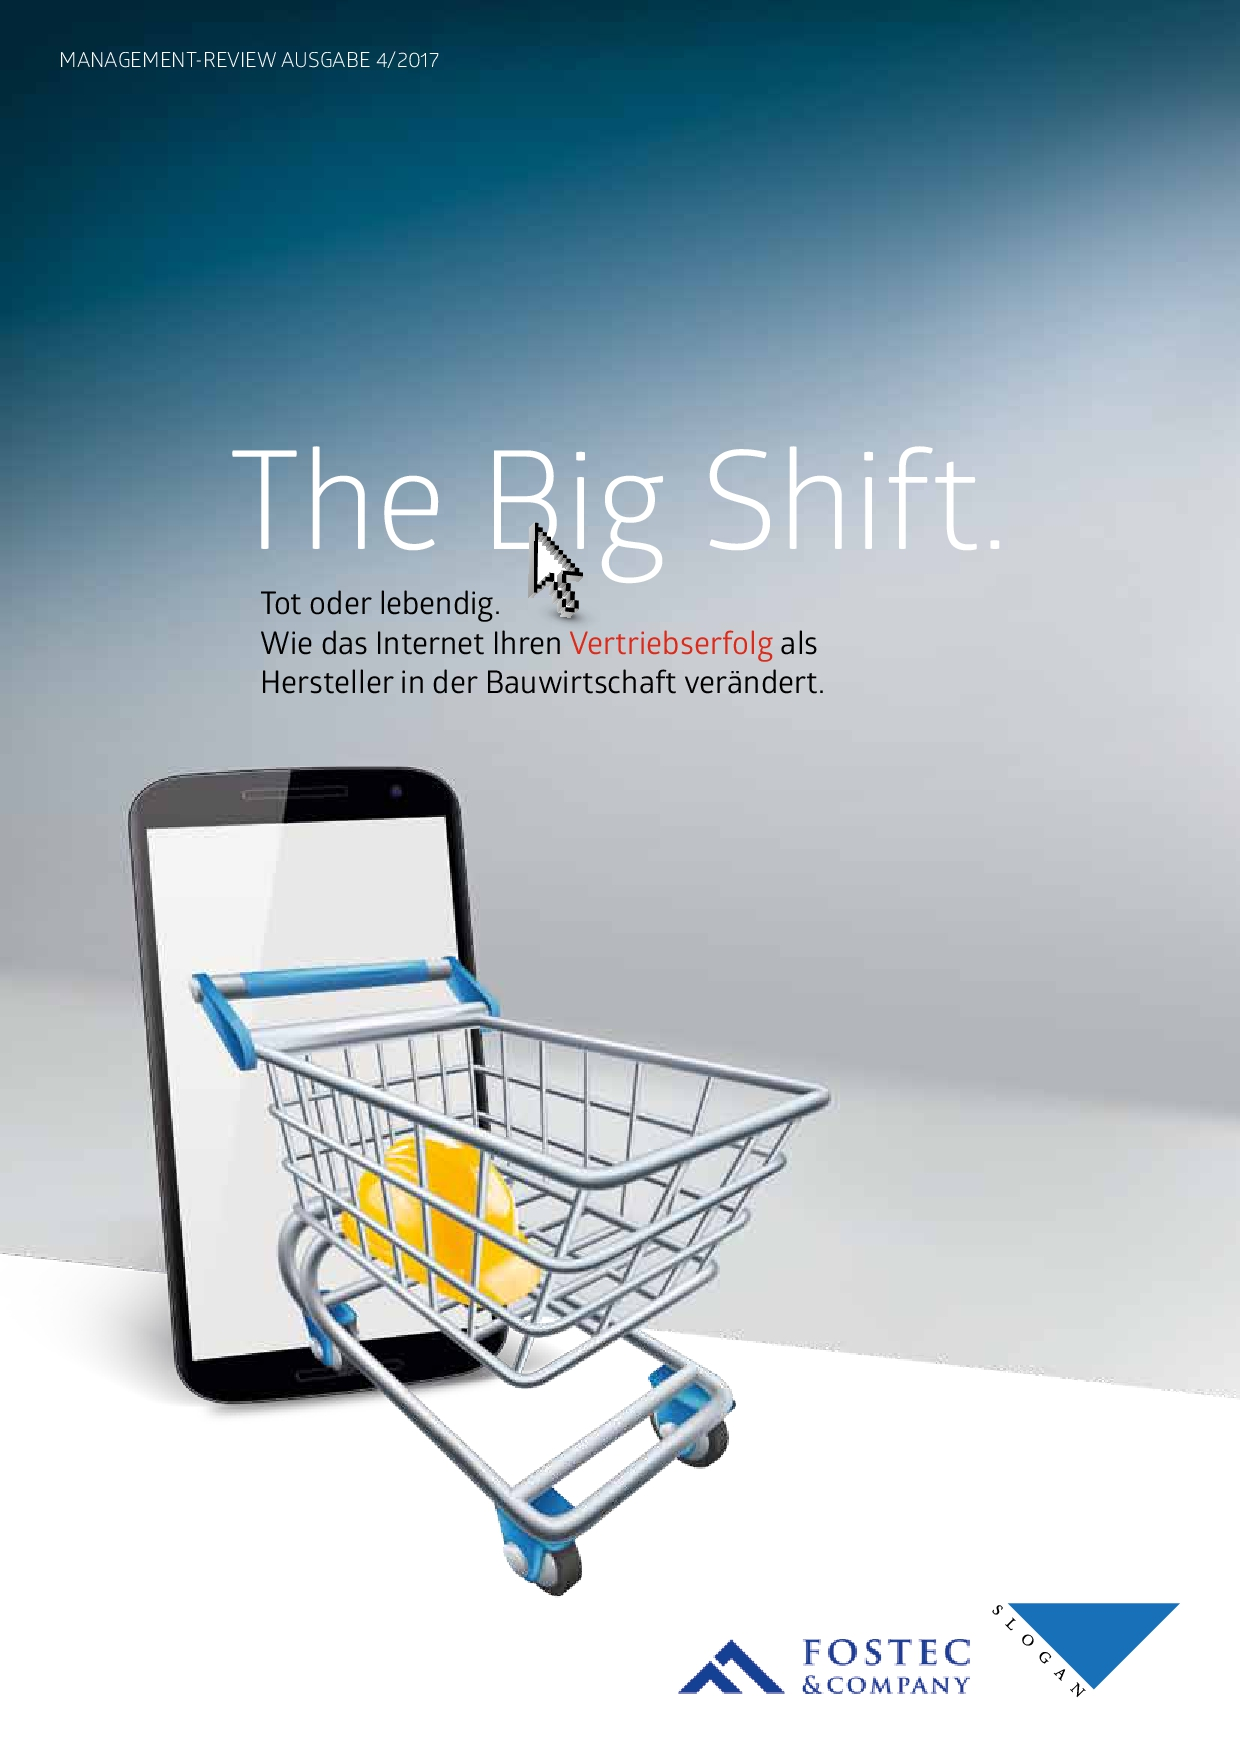 MR The Big Shift Bauwirtschaft